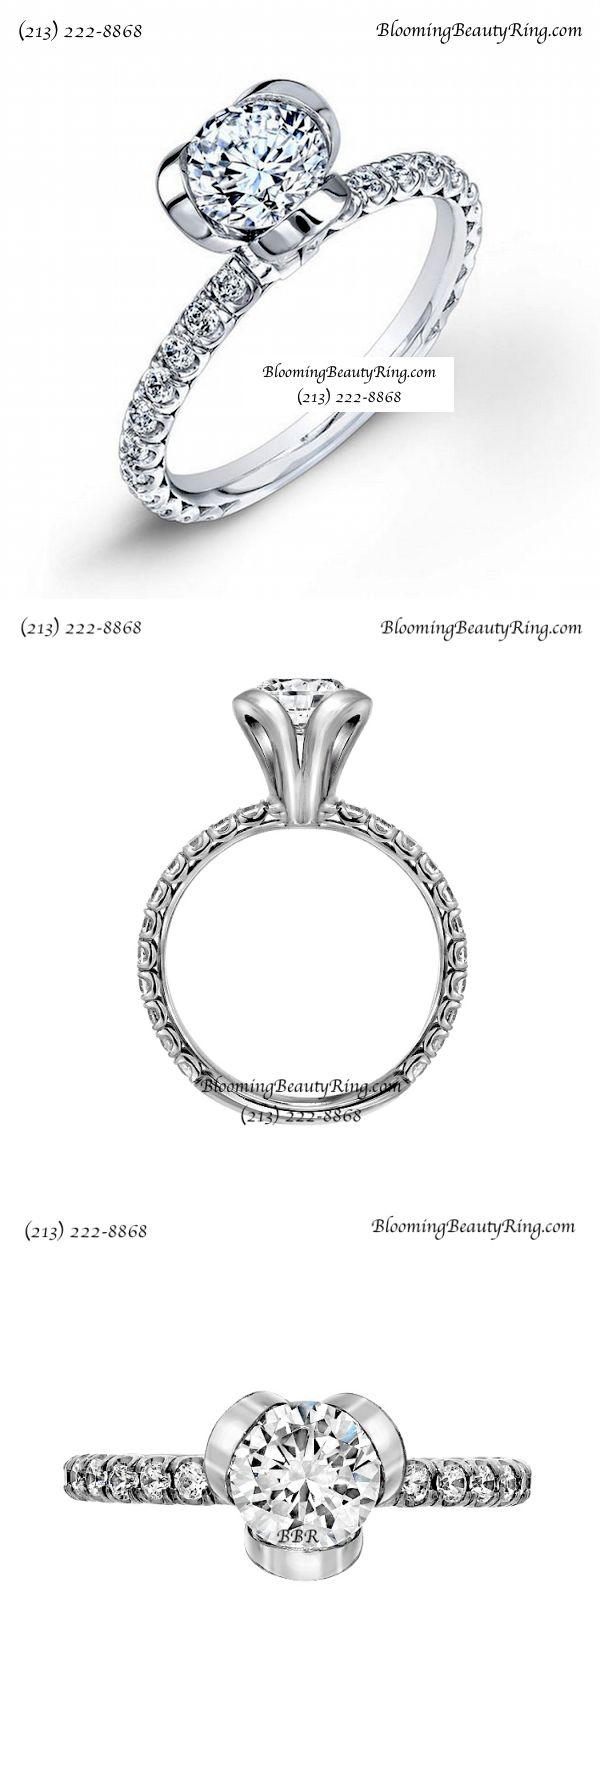 Another unique diamond engagement ring by BloomingBeautyRing.com  #UniqueRingEngagementRing  (213) 222-8868